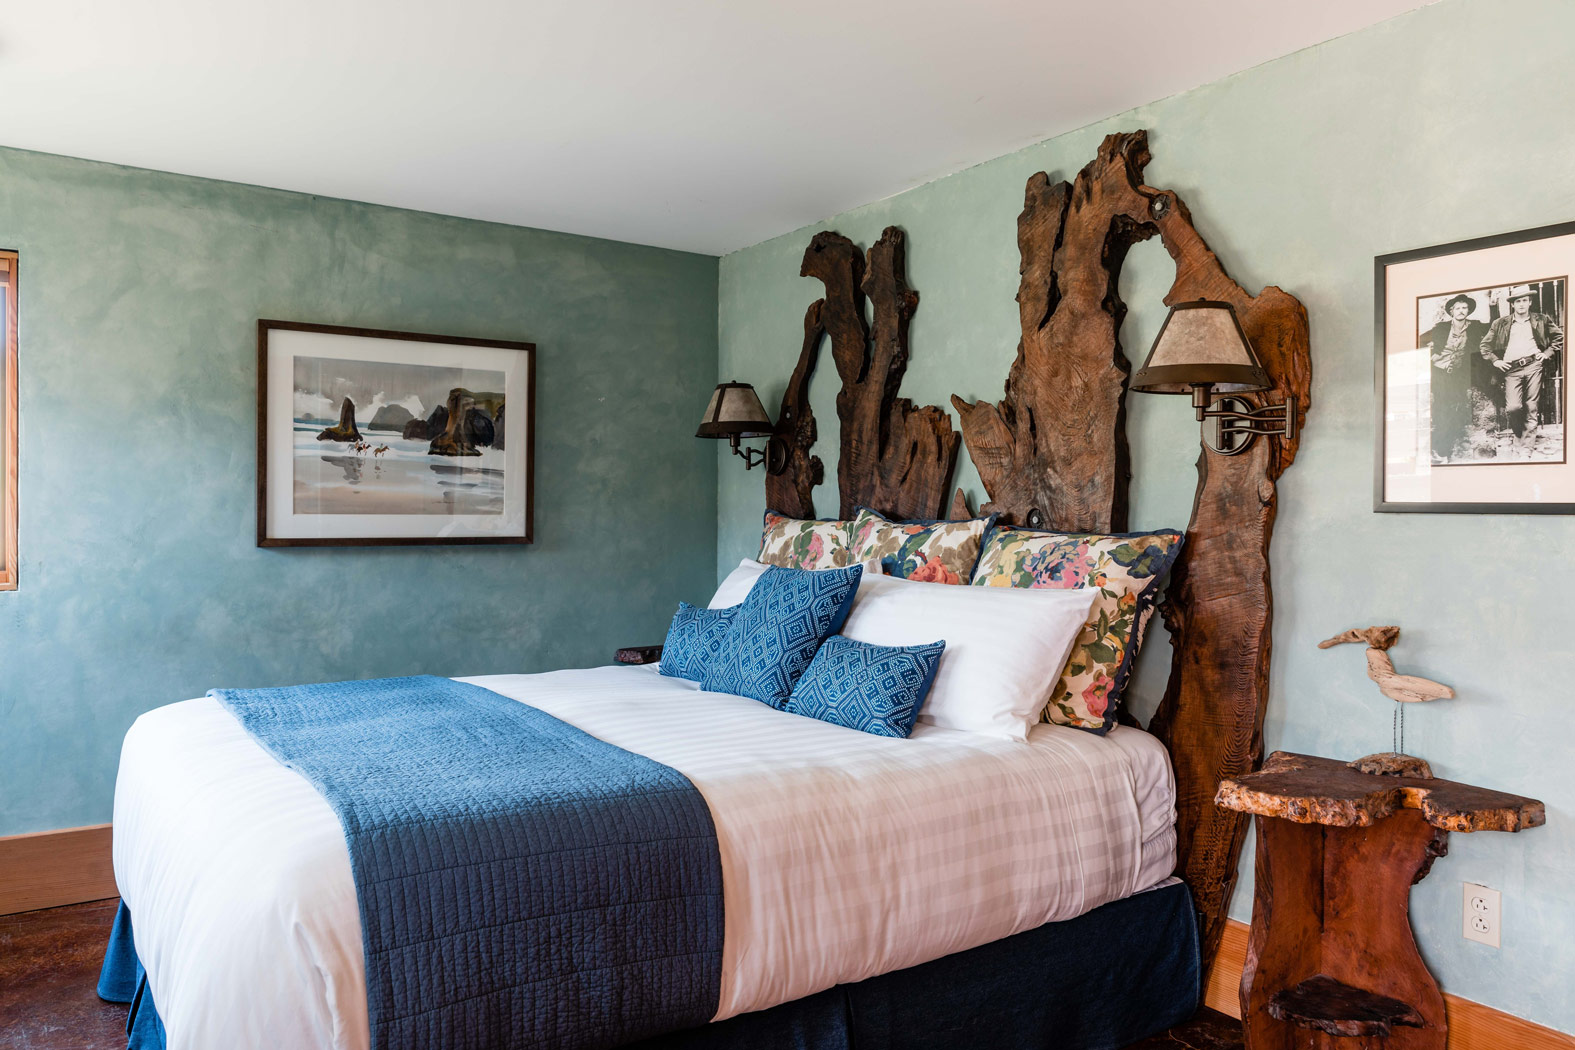 guest room with white linens, navy pillows and blankets, and a wooden headboard